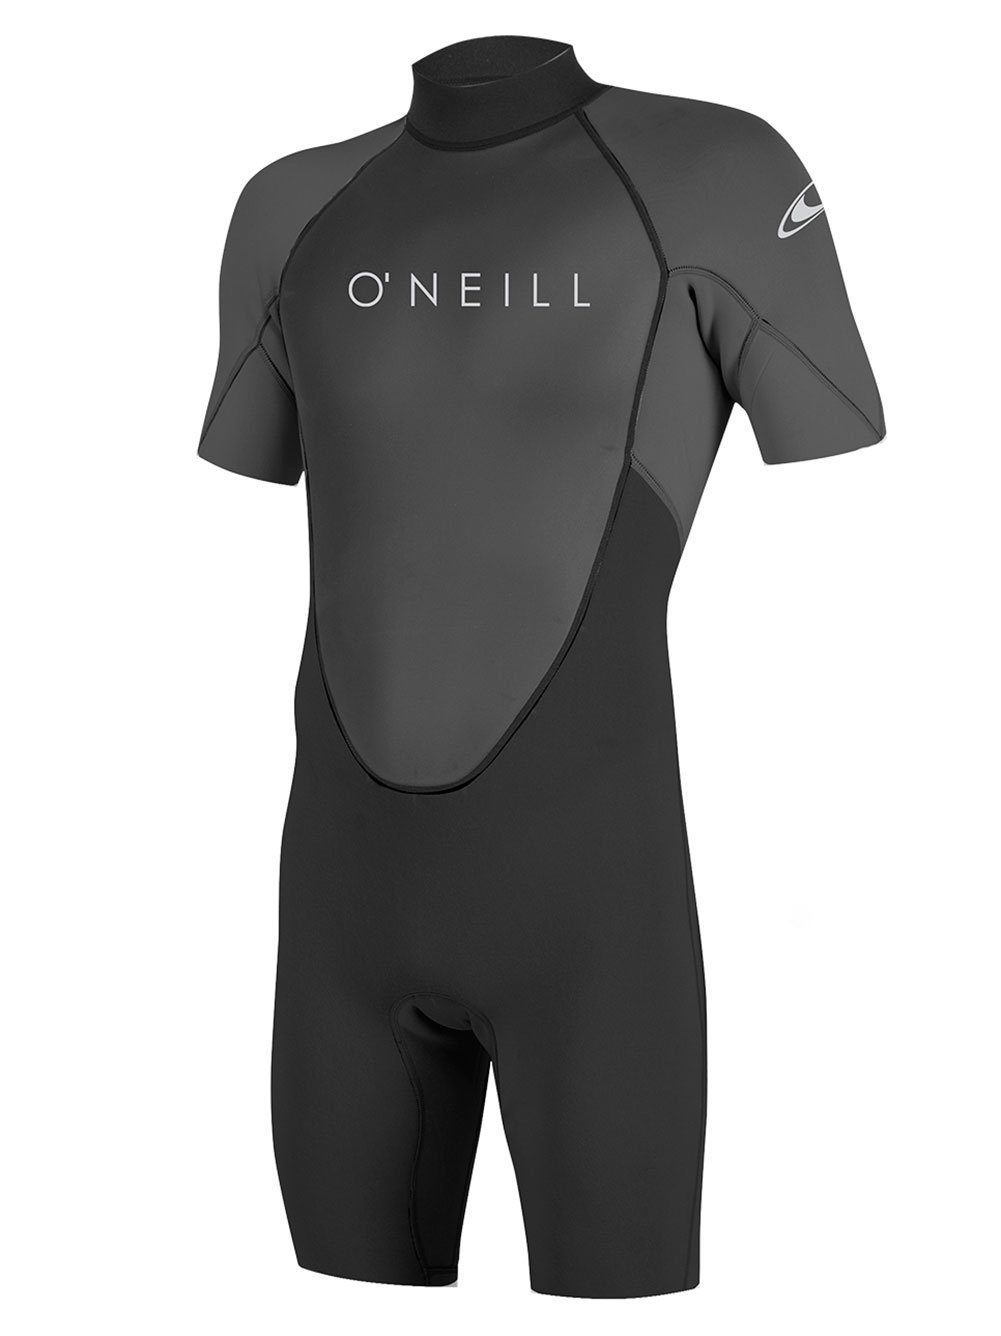 O'Neill Men's Reactor-2 2mm Back Zip Short Sleeve Spring Wetsuit, Black/Graphite, Medium by O'Neill Wetsuits